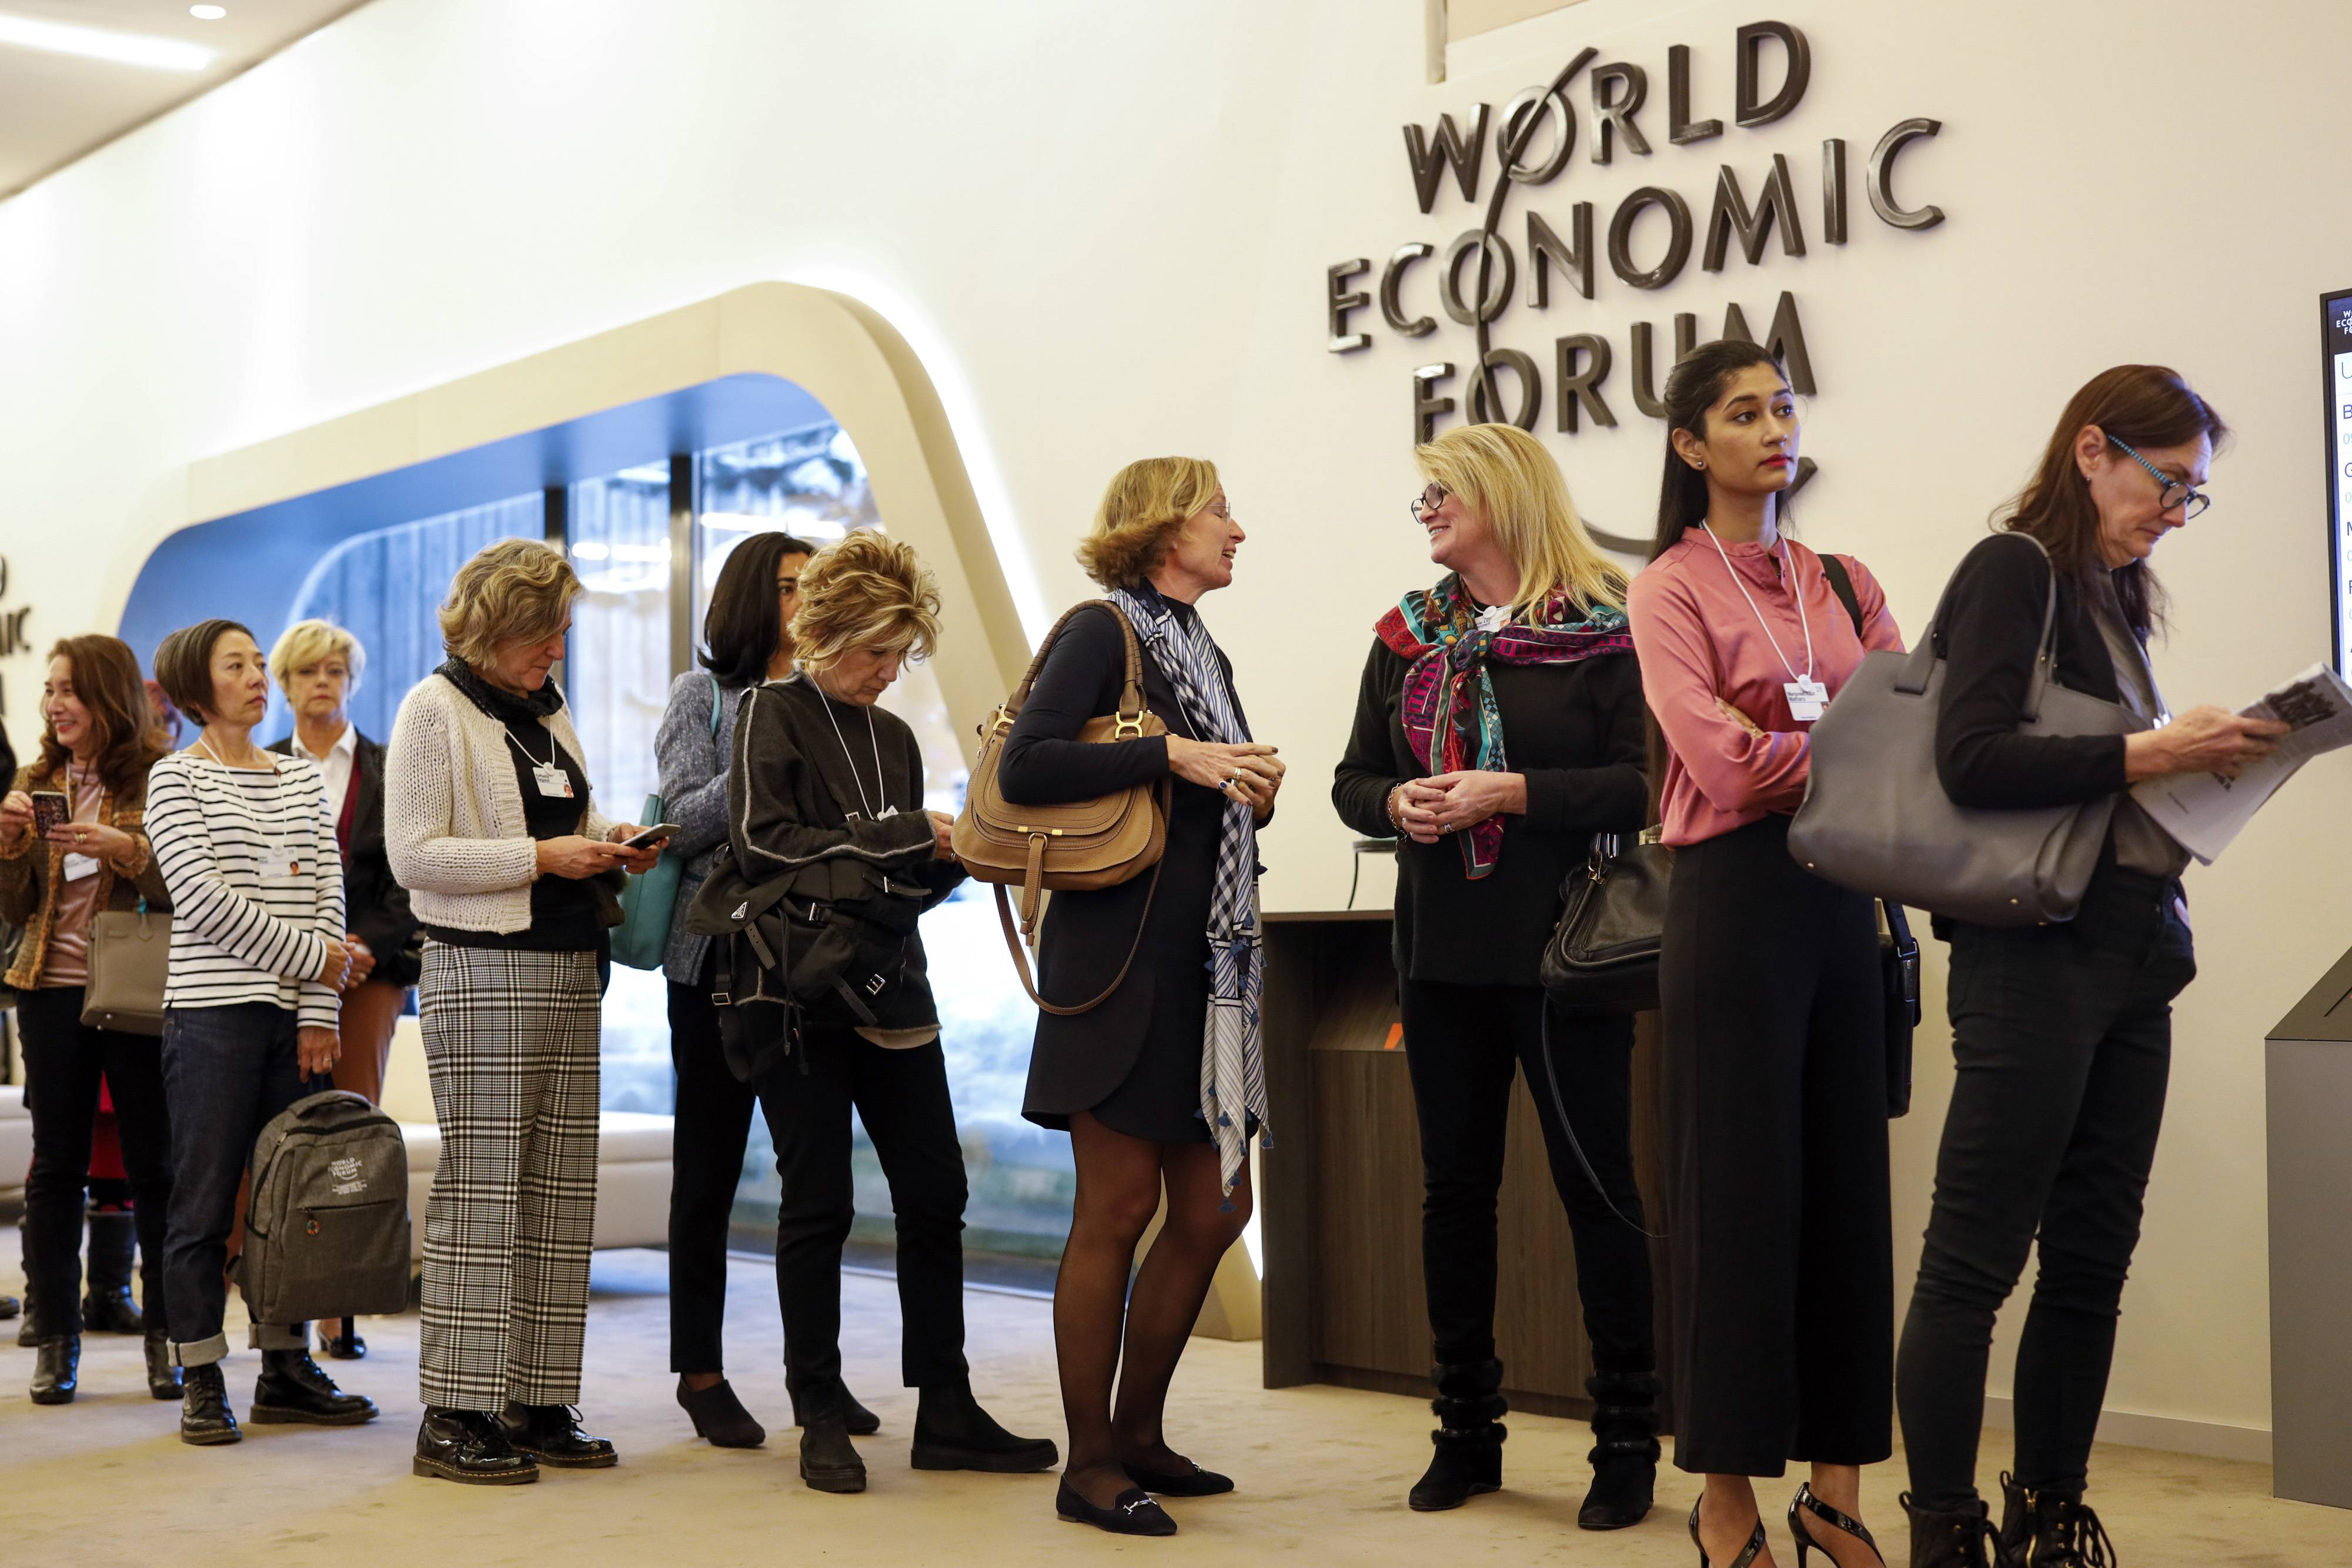 Female attendees line up for a panel session at the World Economic Forum in Davos, Switzerland, on Jan. 23, 2019. MUST CREDIT: Bloomberg photo by Jason Alden